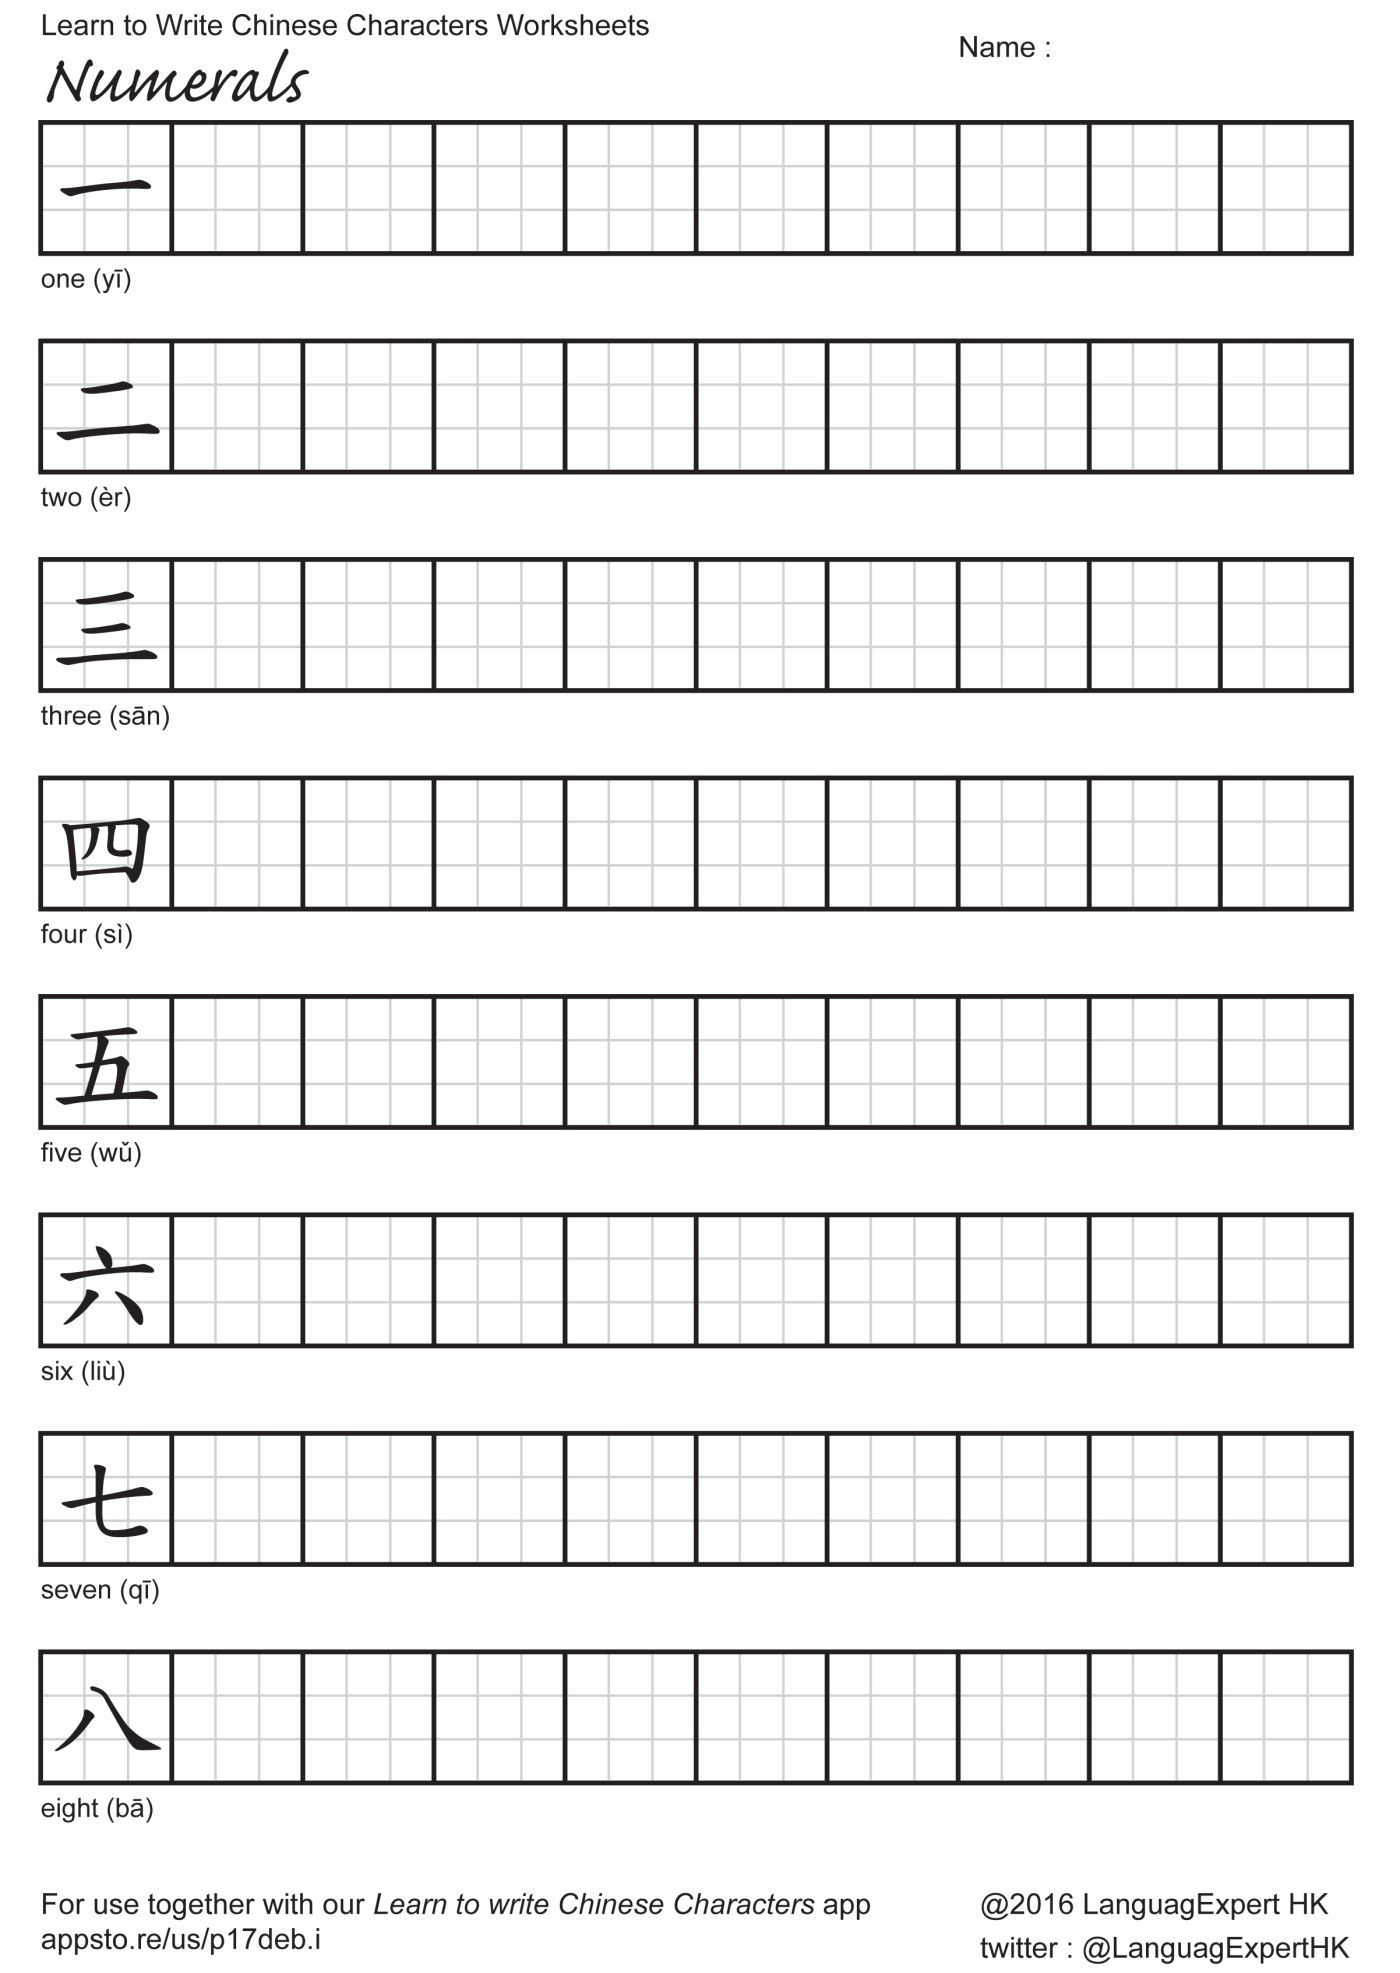 Learn To Write Chinese Characters Worksheets